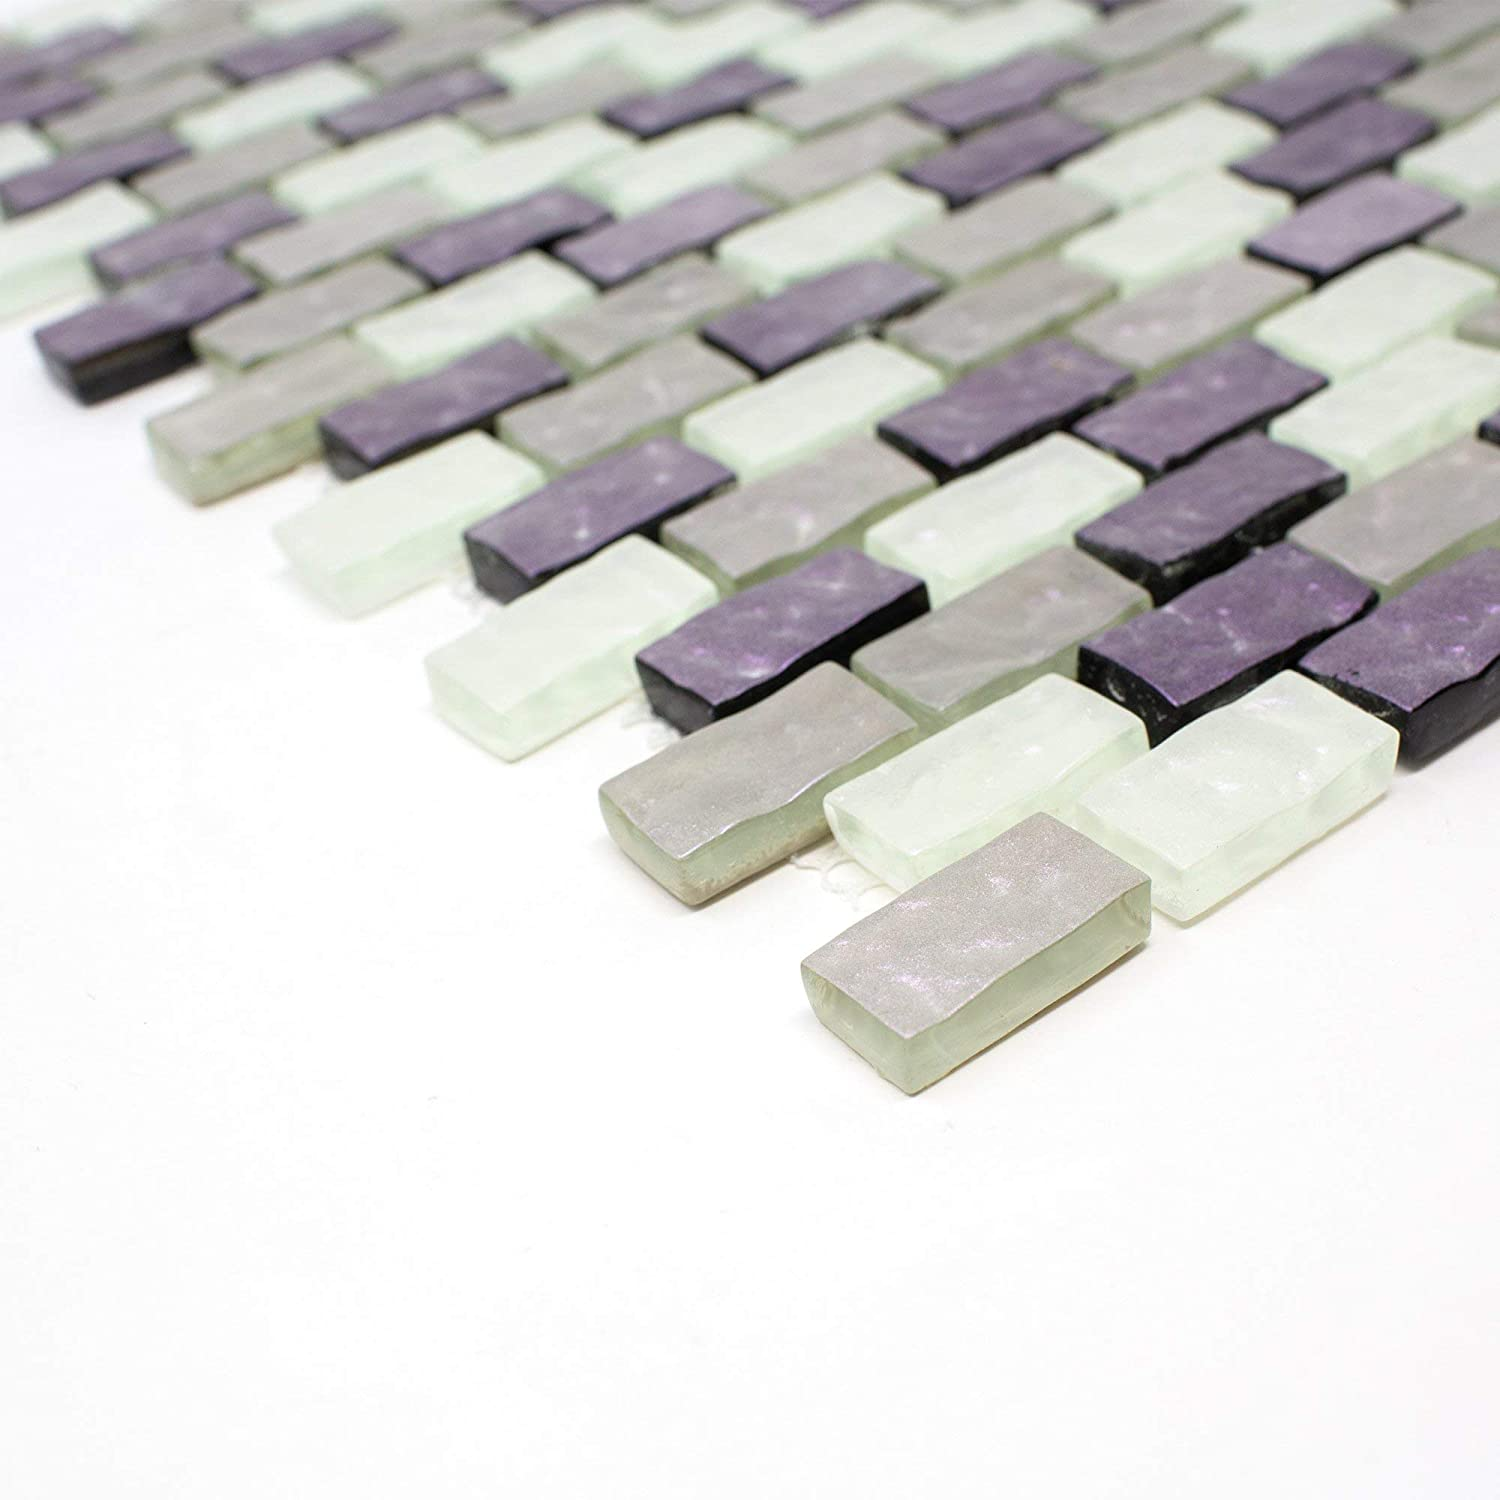 - TPRNG-01 Small Brick Pearl Look Purple Glass Mosaic Tile